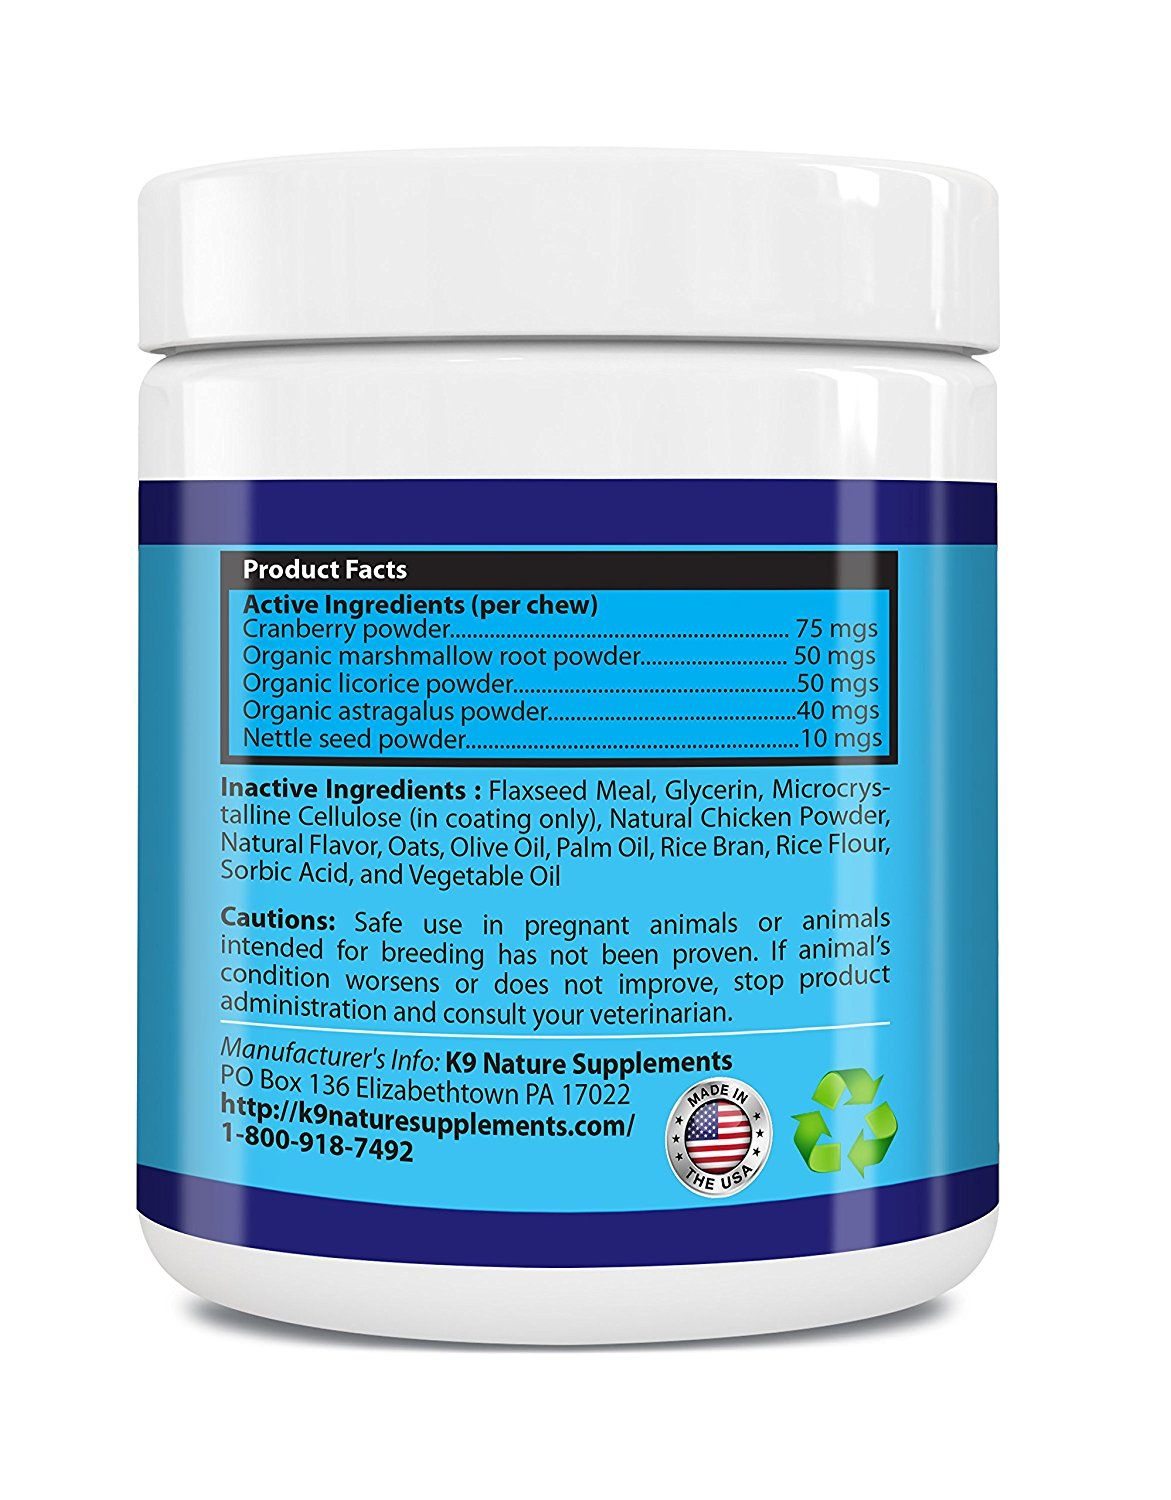 Bladder And Kidney Support For Dogs Natural Cranberry Supplement For Urinary Strength And Renal Health 55 Soft Chews Bladder Kidney Supplements Incontinence